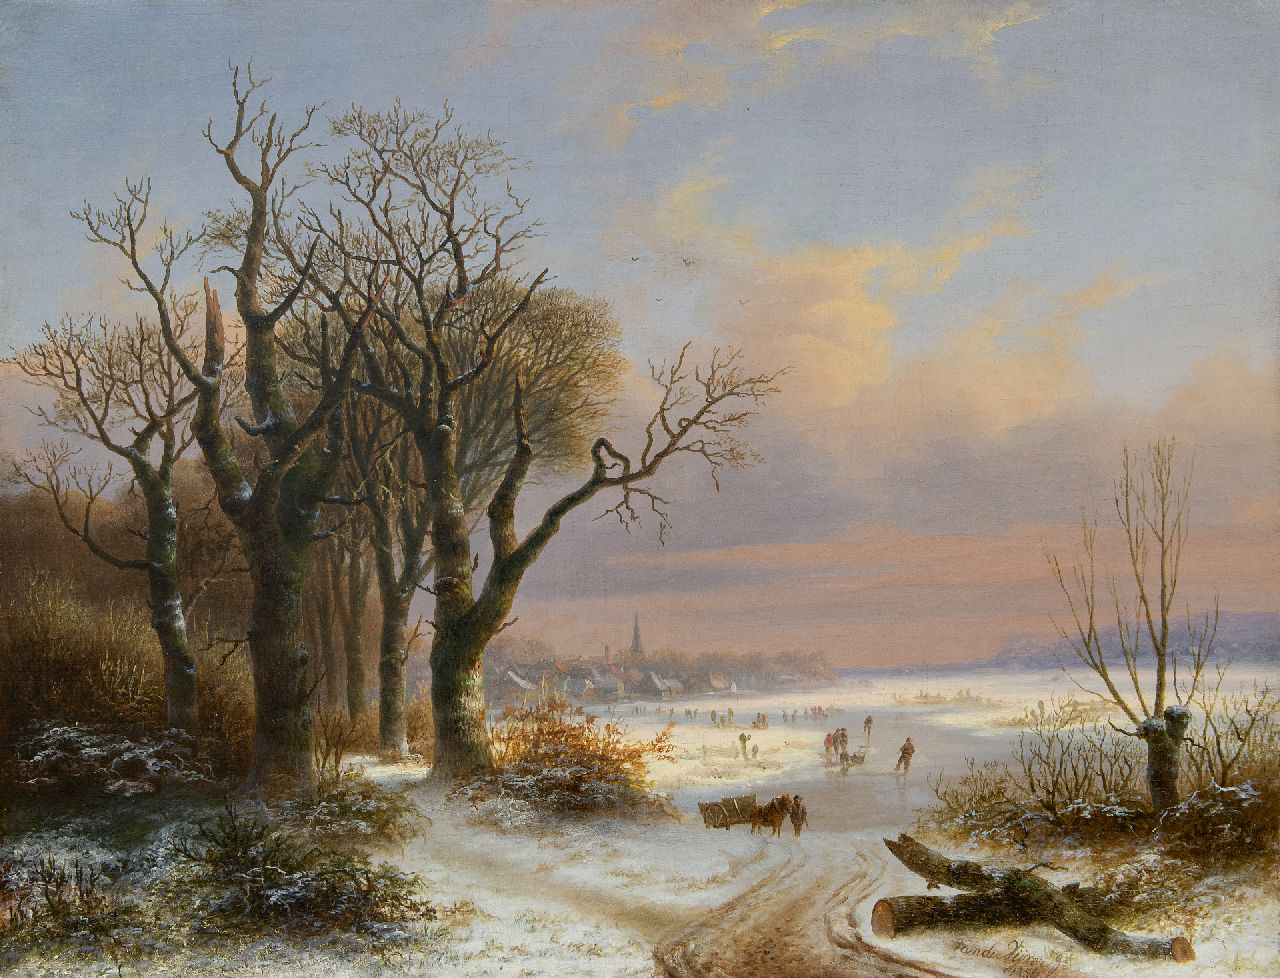 Willem Simon Petrus van der Vijver | A winter landscape with skaters near a village, oil on canvas, 48.8 x 62.5 cm, signed l.r. and dated 1854